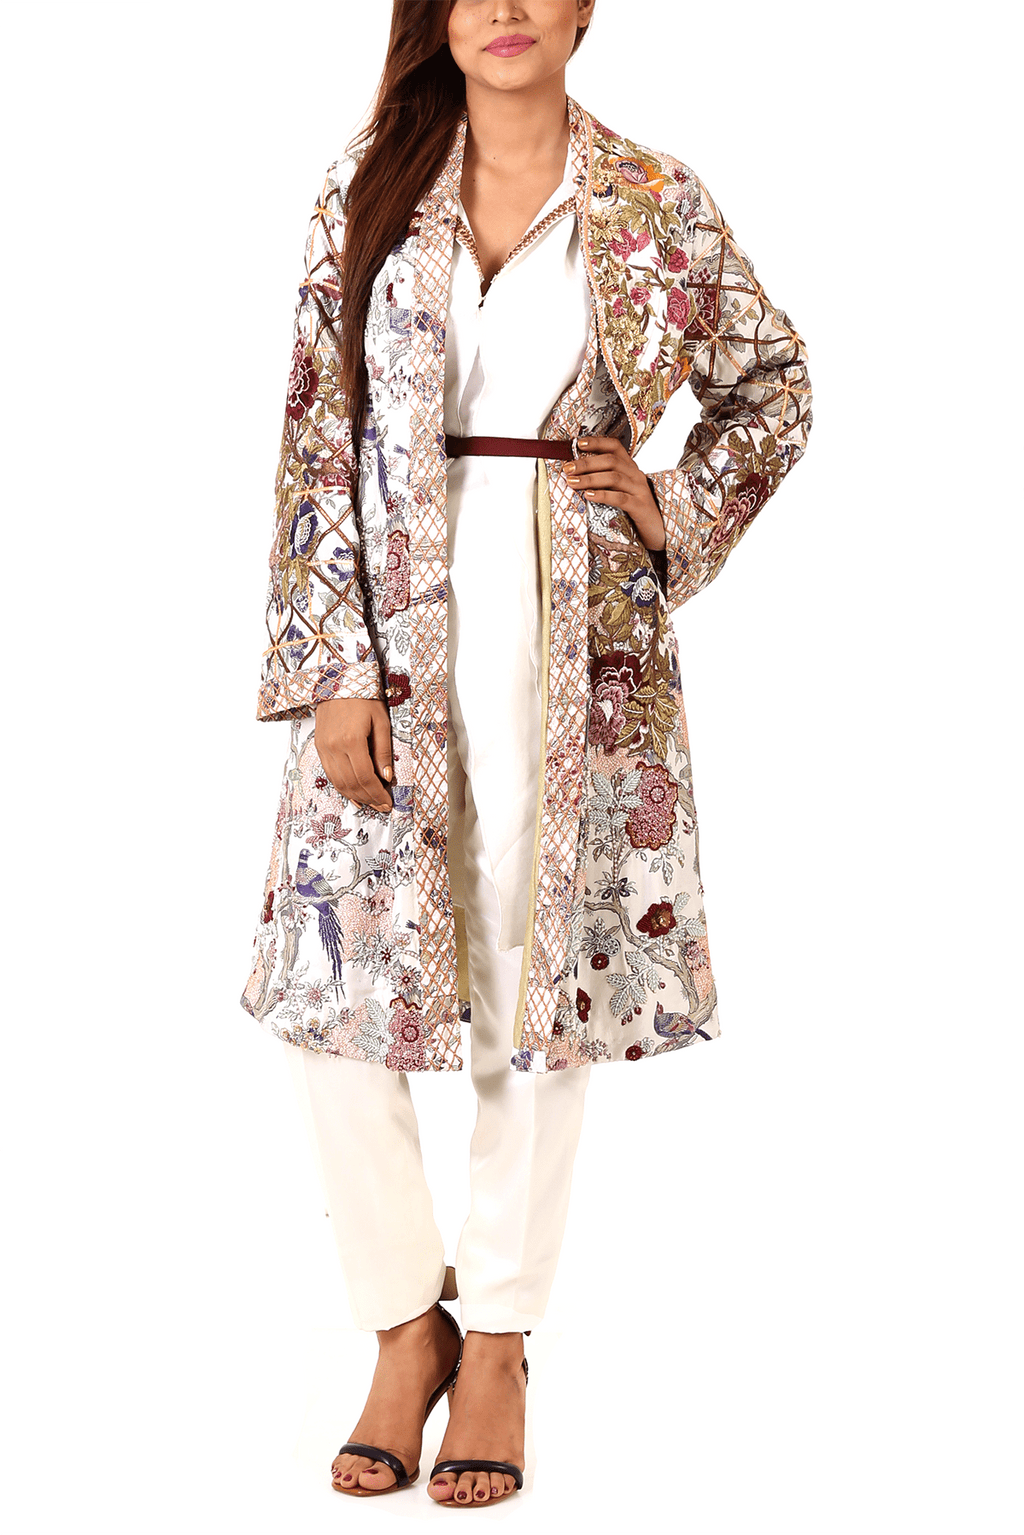 Shamaeel - Embroidered Raw Silk Jacket & Inner With Cape